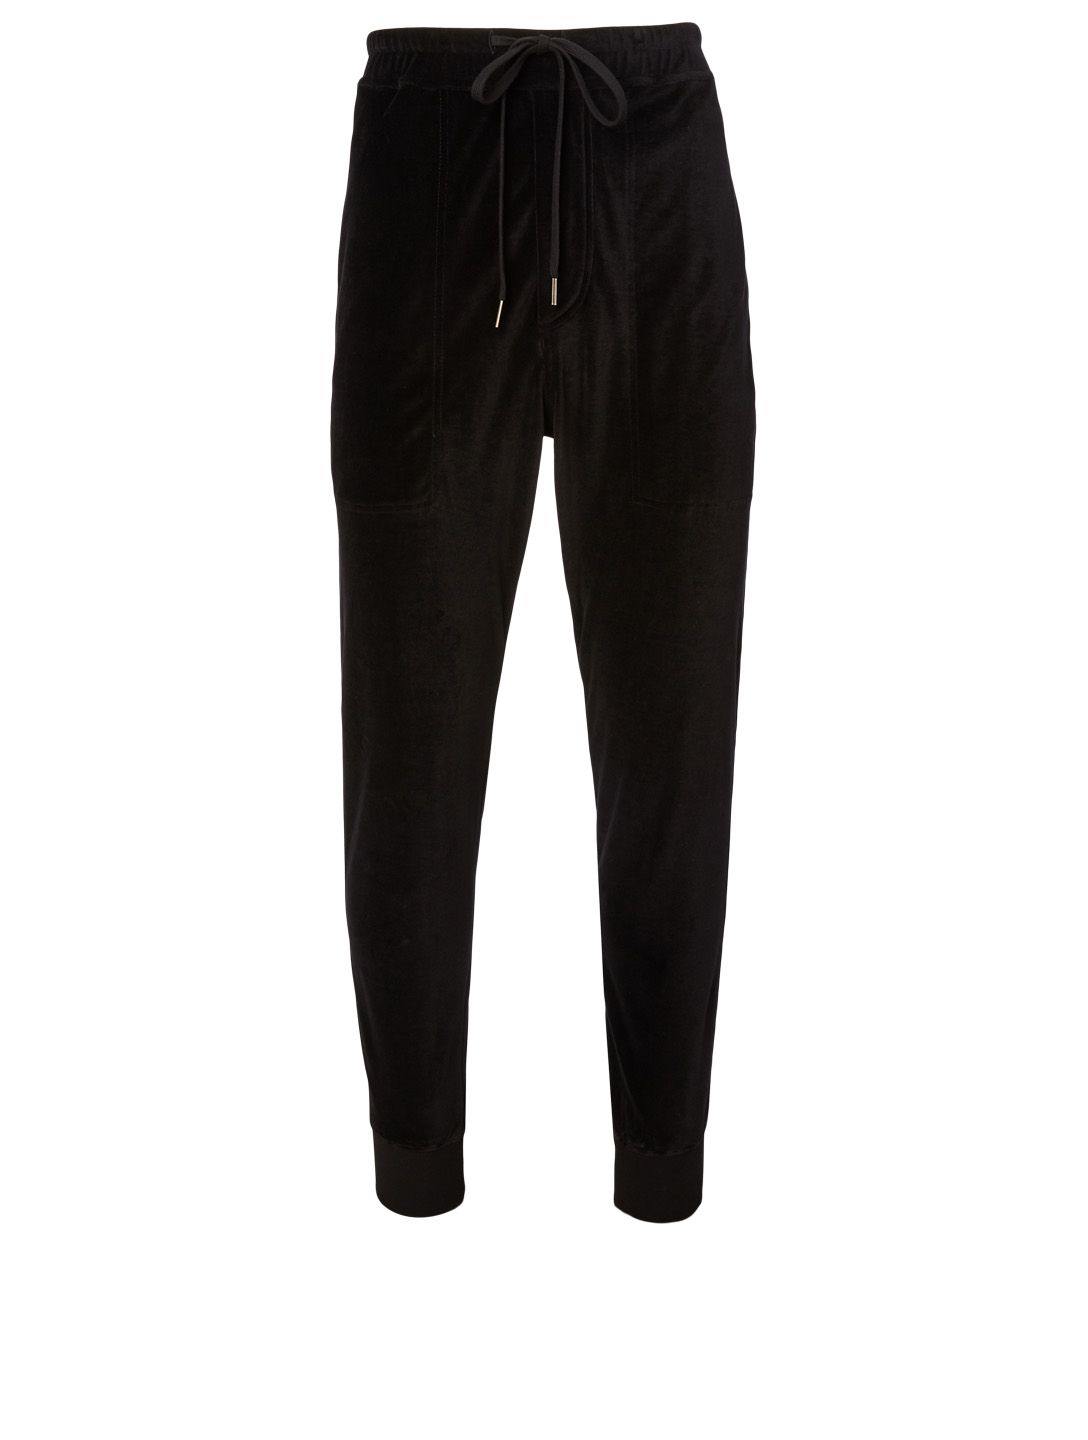 TOM FORD Pantalon sport en velours Hommes